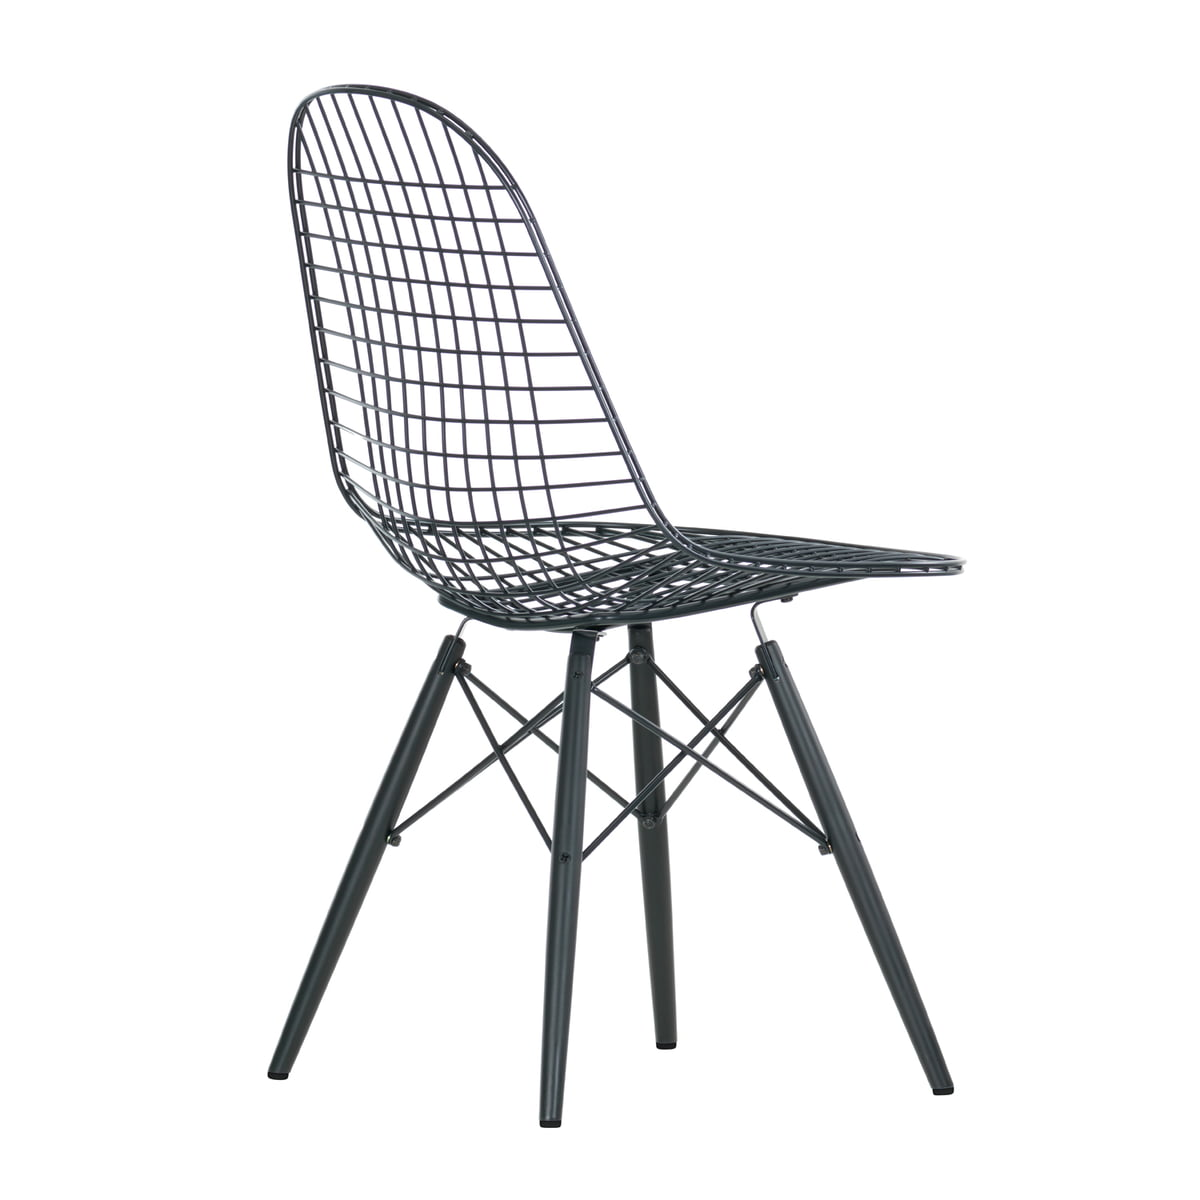 Greatest Wire Chair DKW by Vitra in the home design shop CC54